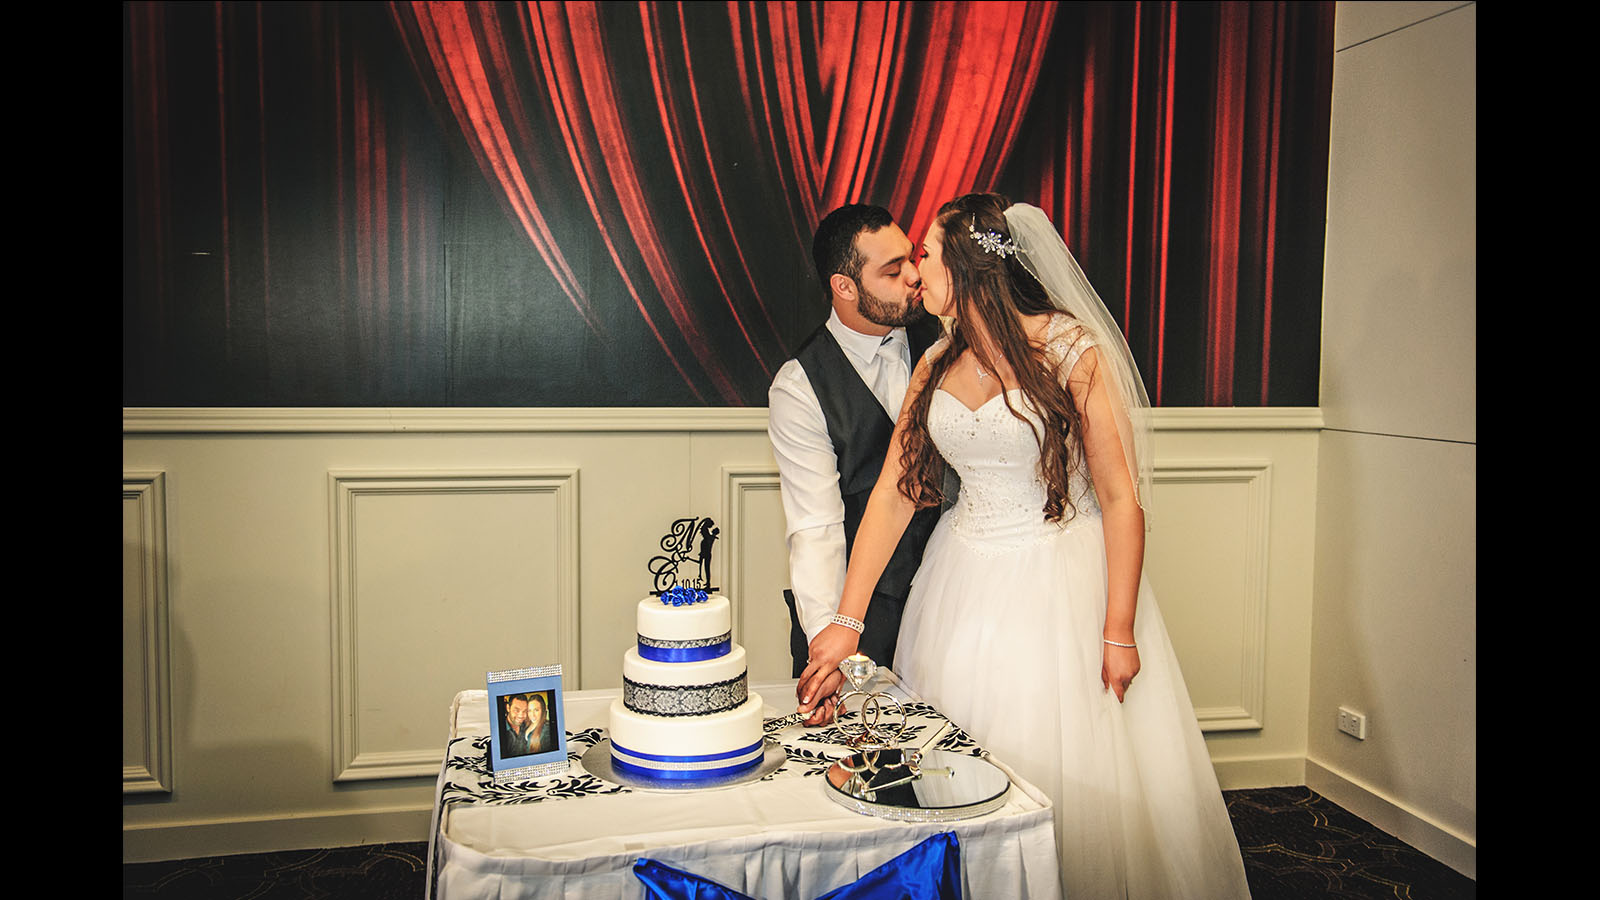 wedding photography bride and groom cutting cake